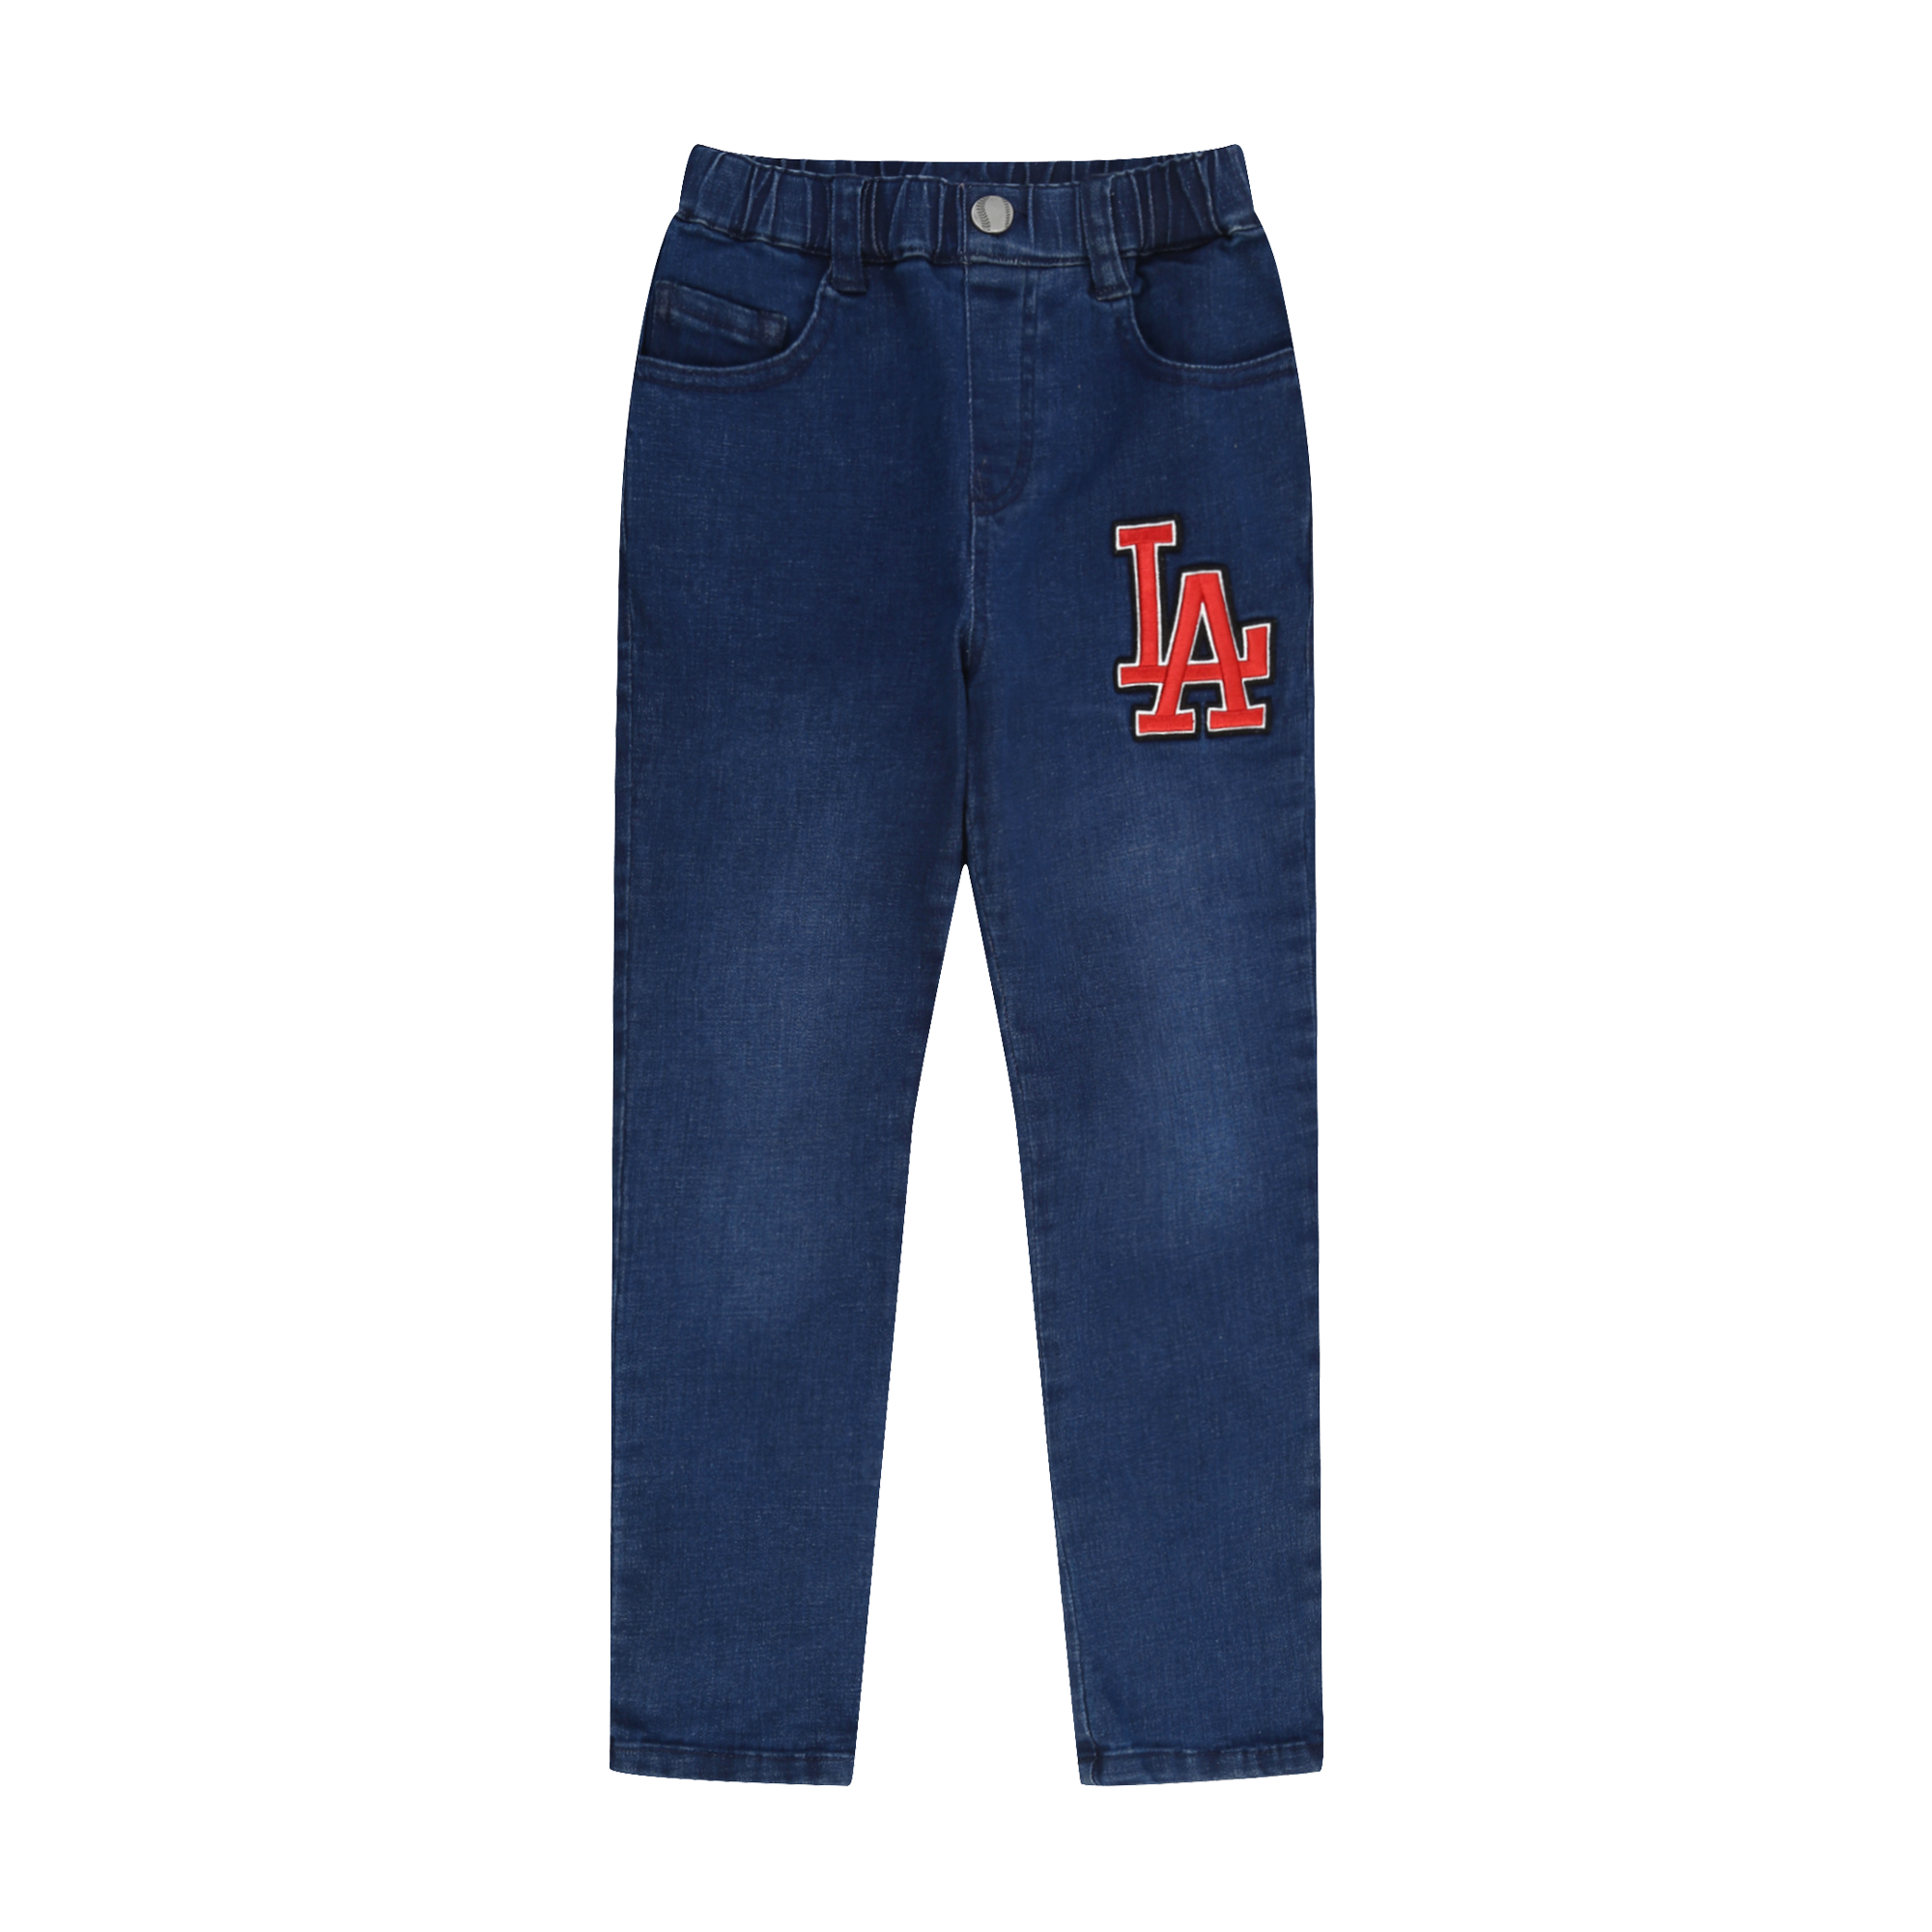 LA DODGERS UNISEX BIG LOGO DENIM PANTS